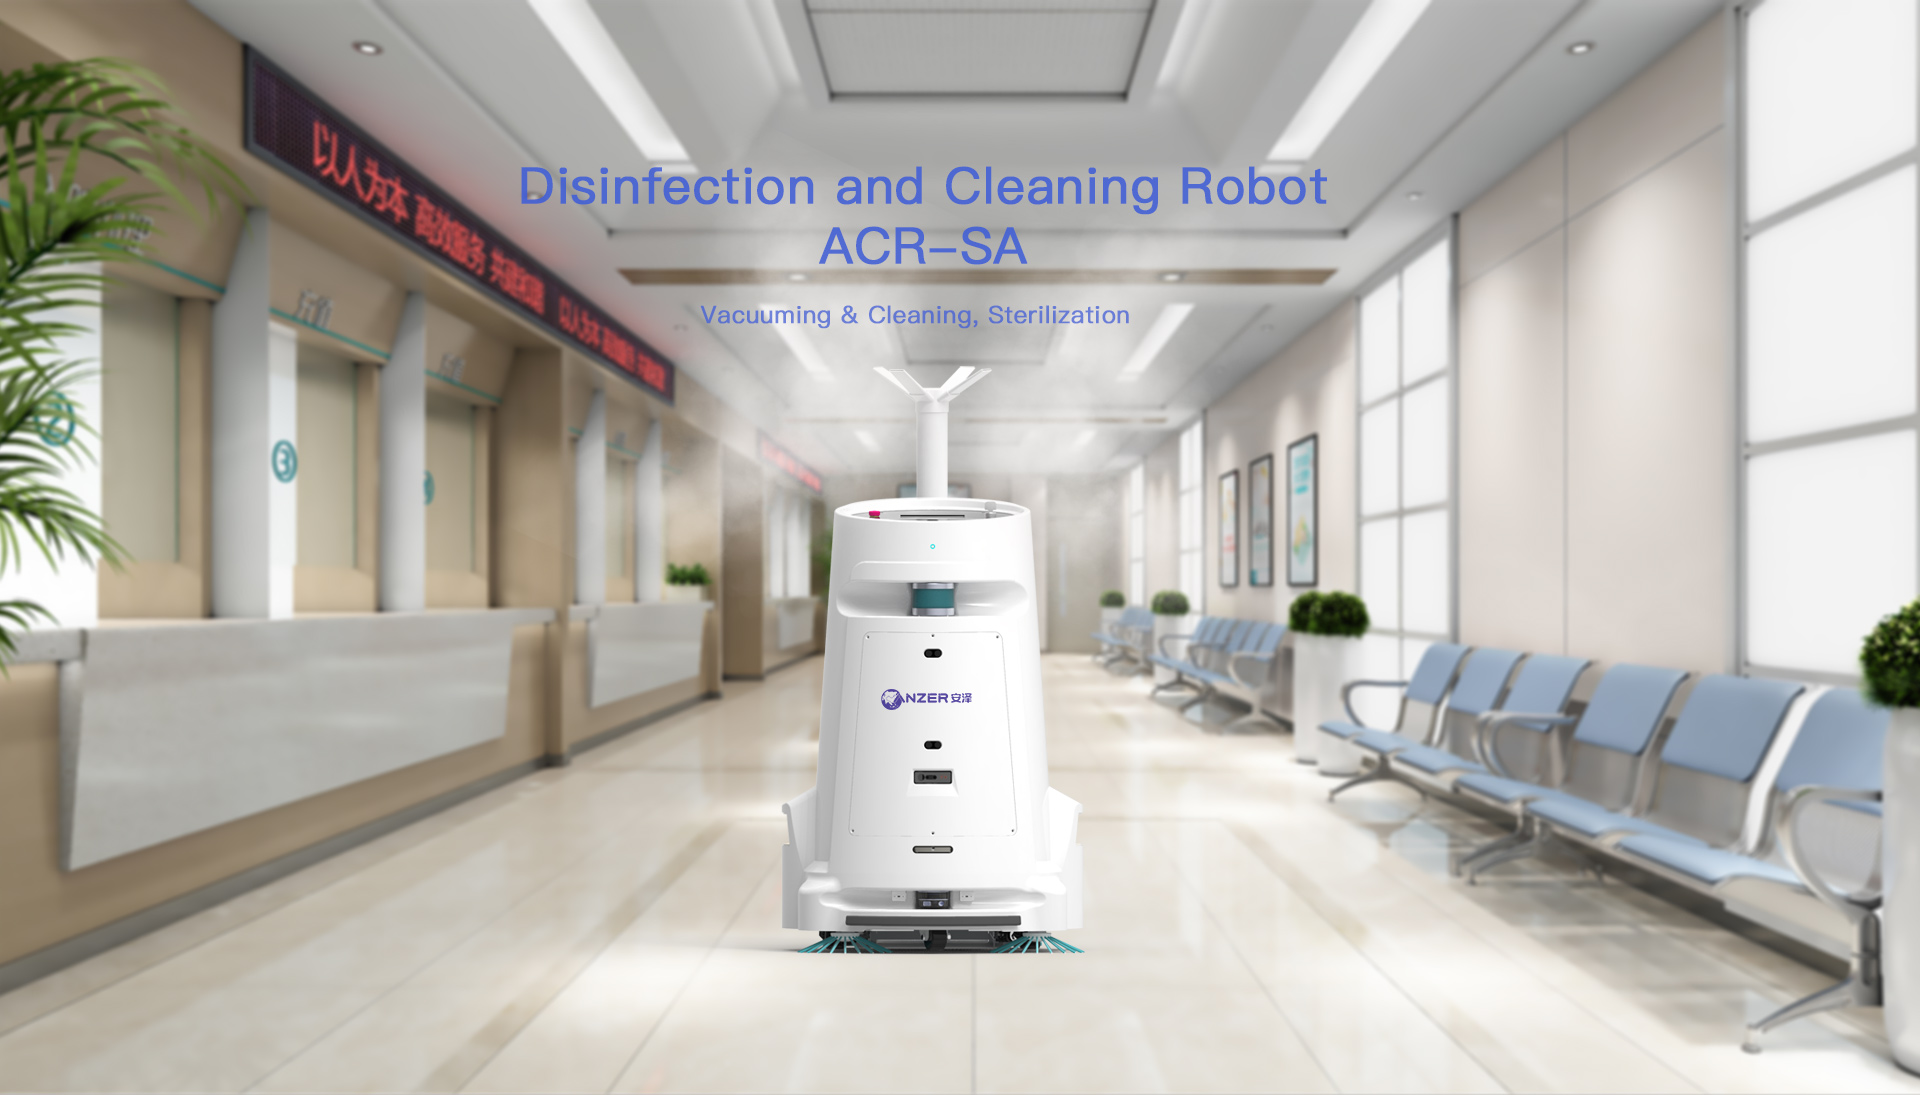 Disinfection and cleaning robot